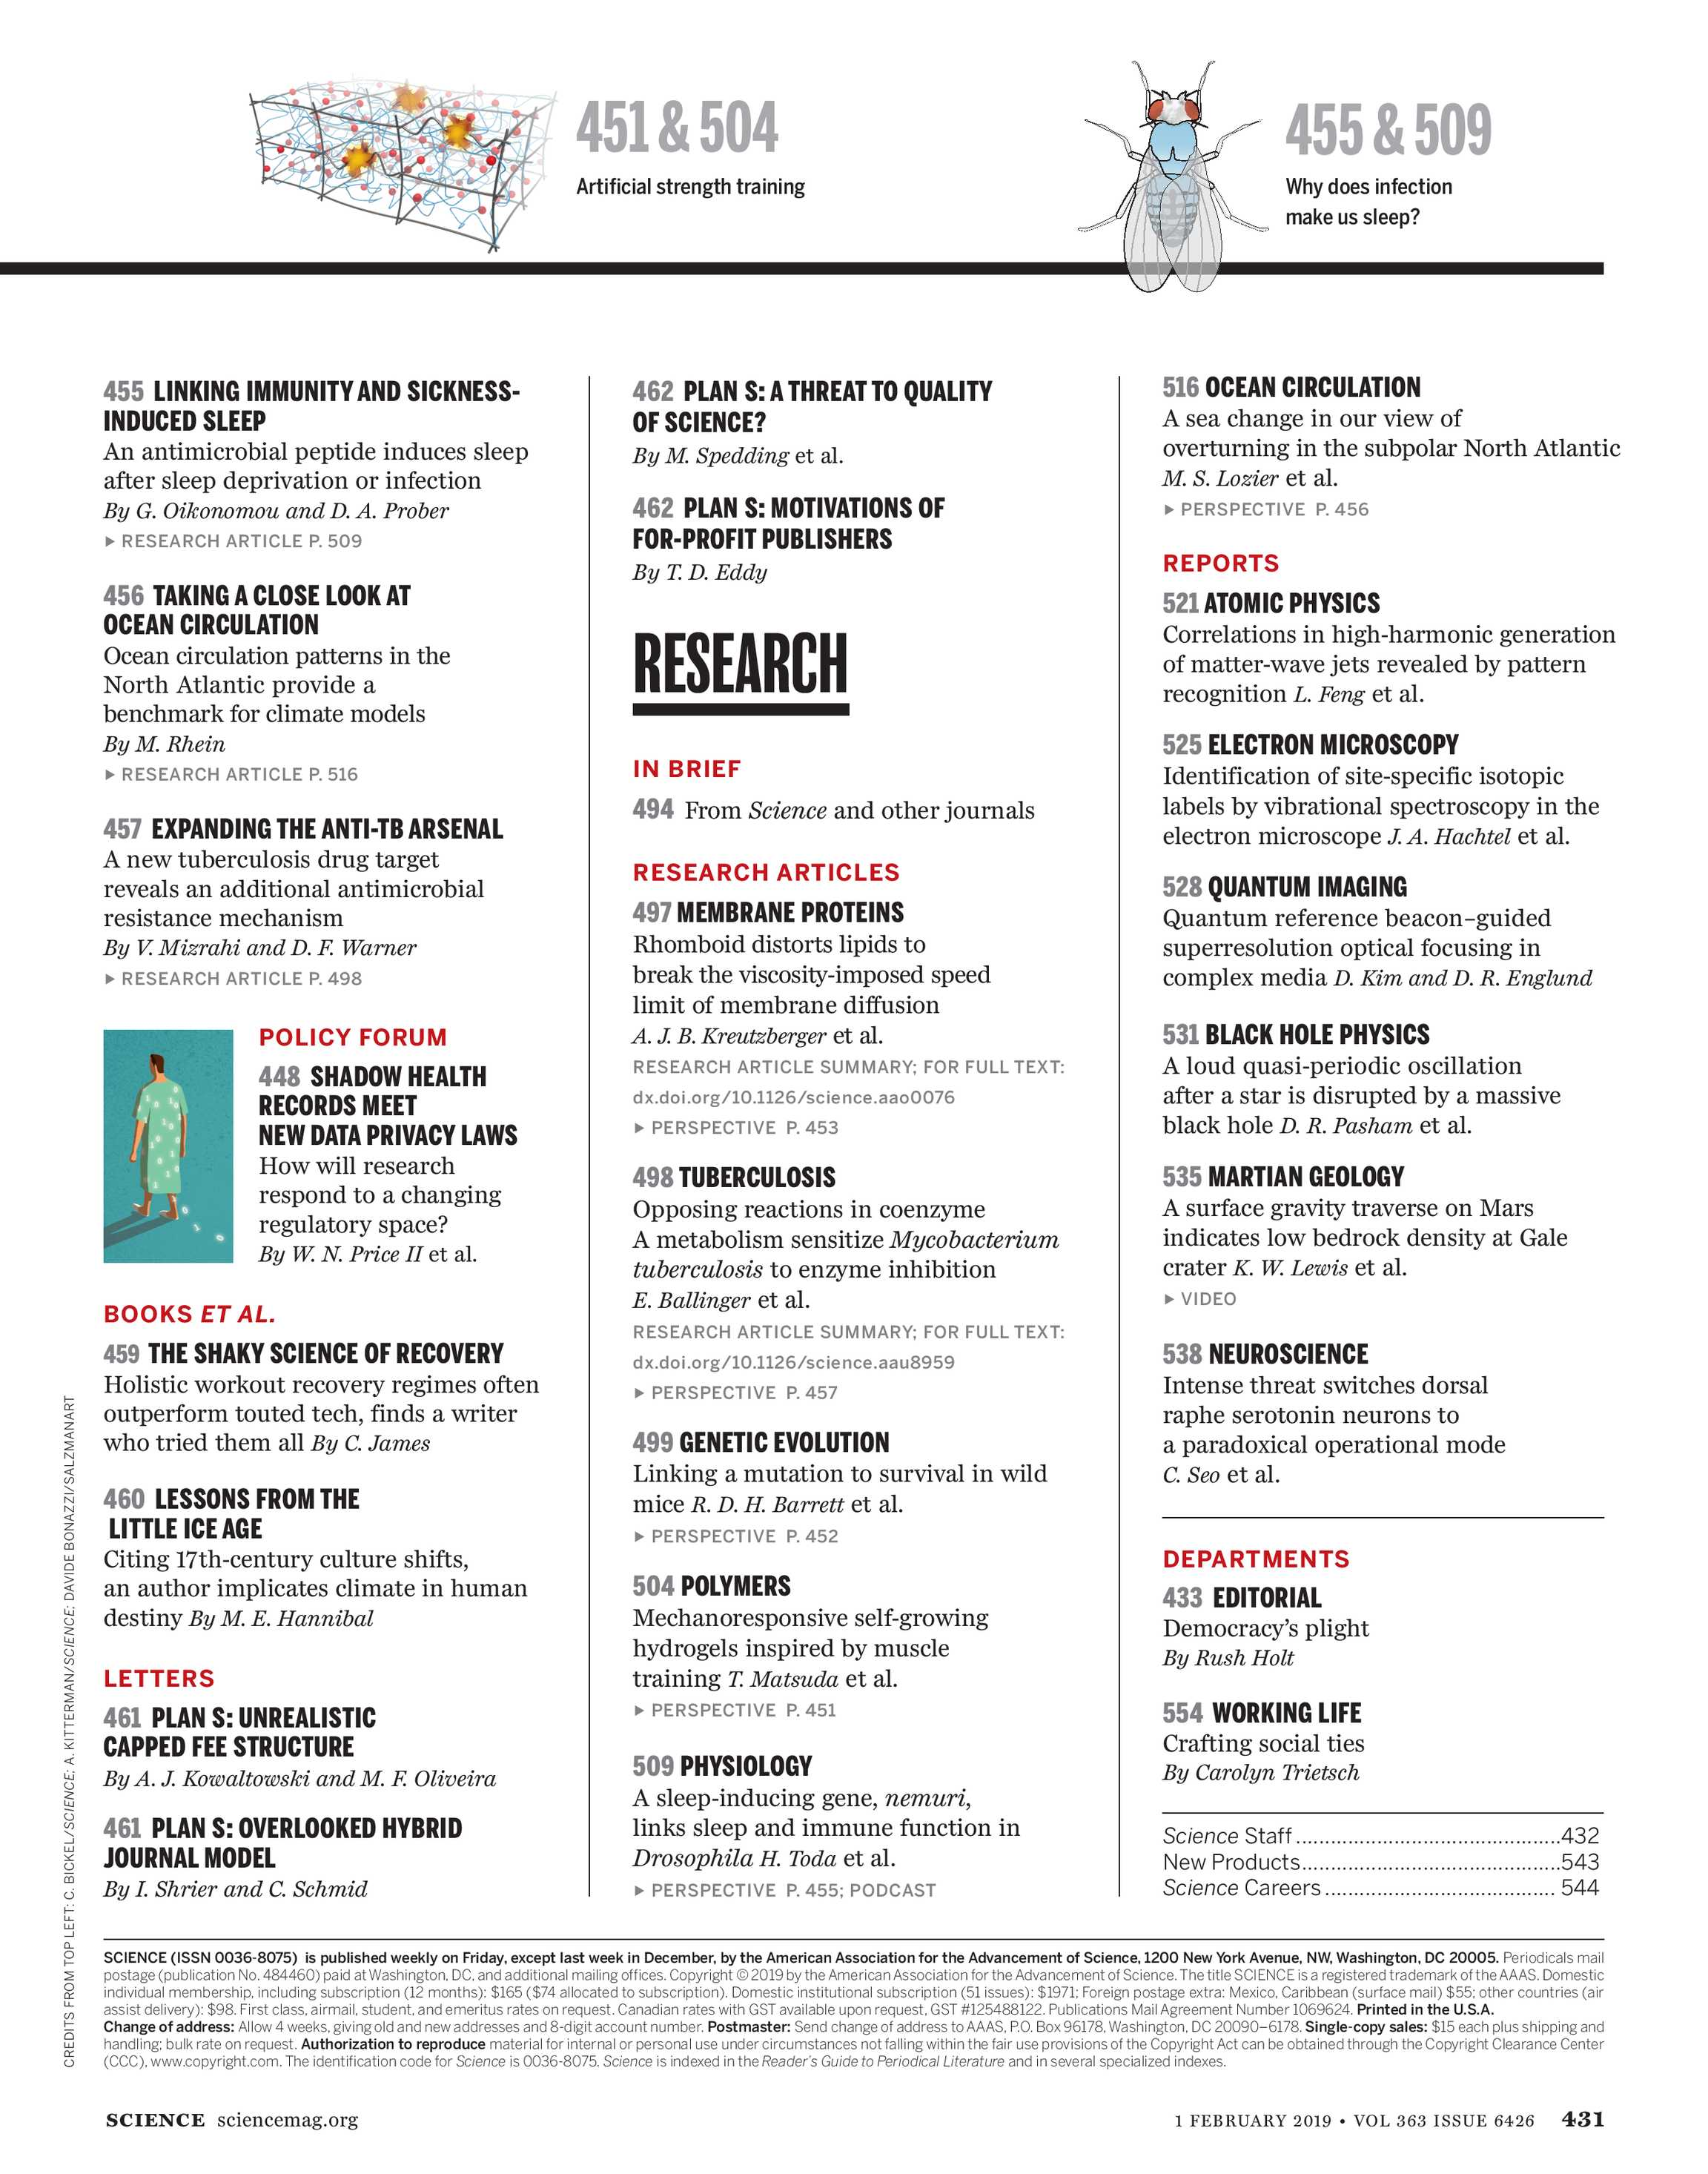 Science Magazine - February 1, 2019 - page 432